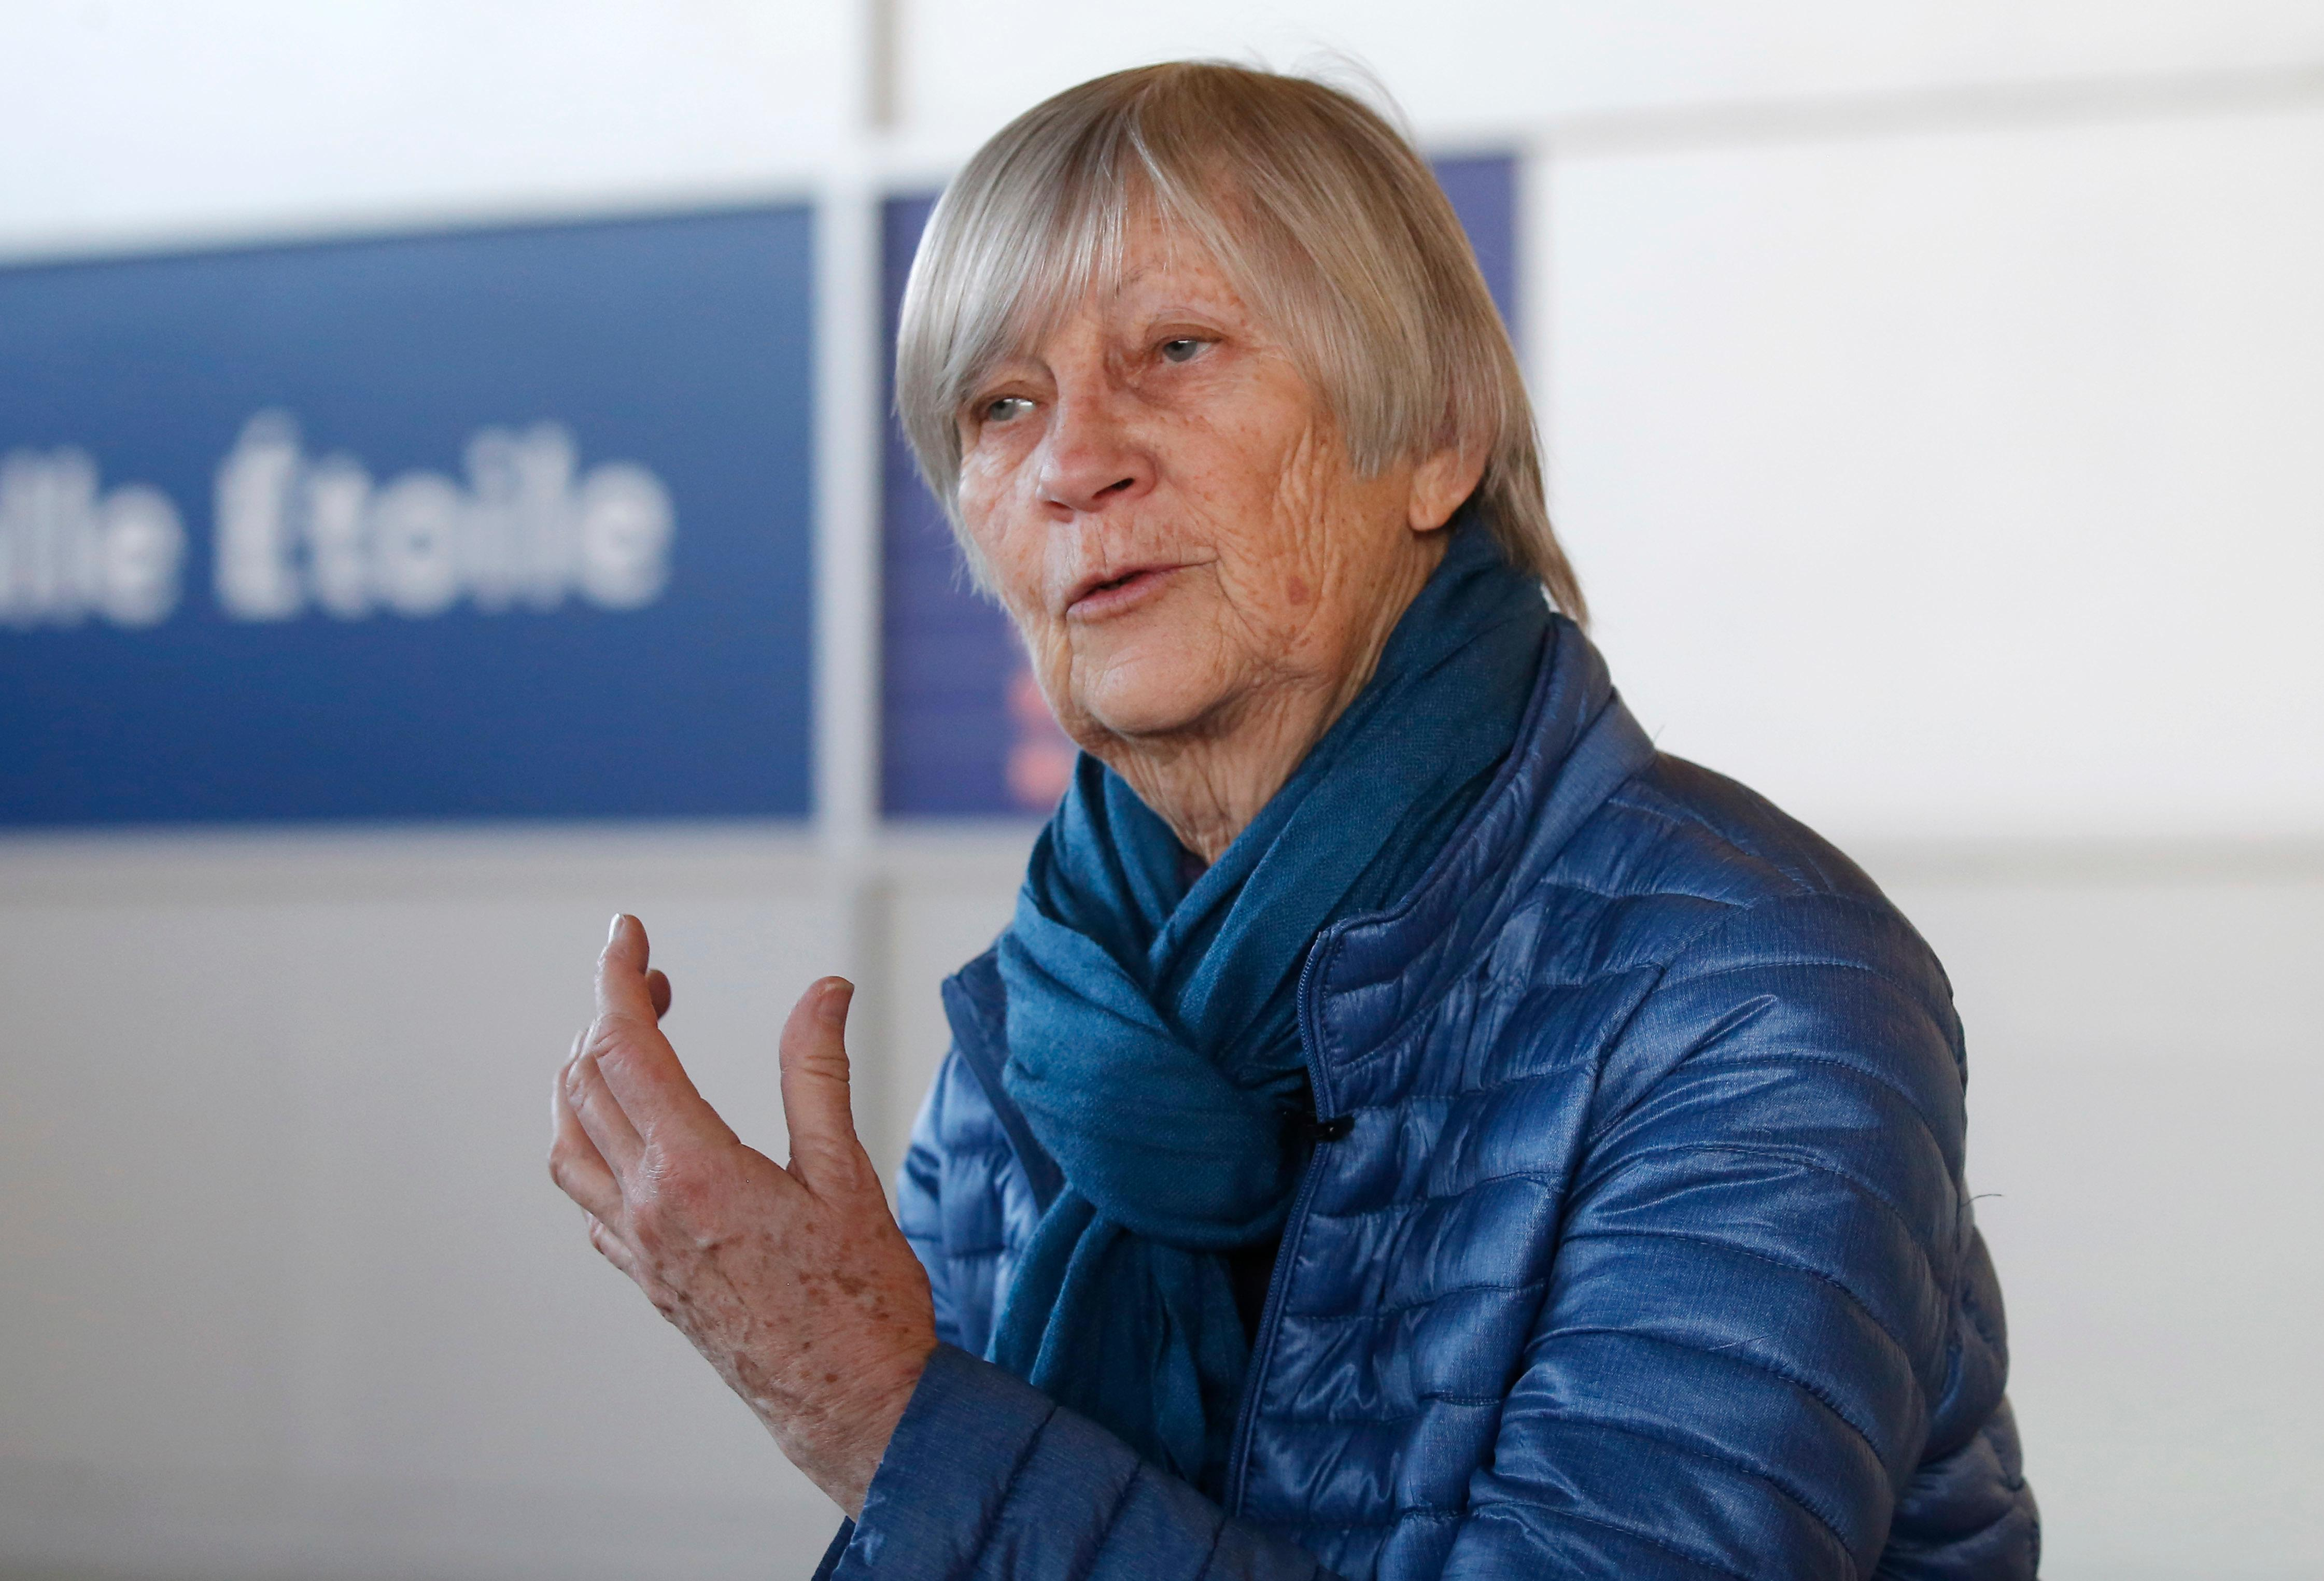 Catherine Bonnet, French child psychiatrist and a member of the Pontifical Commission for the Protection of Minors, gestures as she speaks during an interview with the Associated Press at Charles de Gaulle airport outside Paris, France, Sunday, Feb. 4, 2018. Commission members and a church sex-abuse victim say Pope Francis received a letter from the victim in 2015 that graphically detailed his abuse and a cover-up by Chilean church authorities, contradicting the pope's recent insistence that no victims had come forward. (AP Photo/Michel Euler)